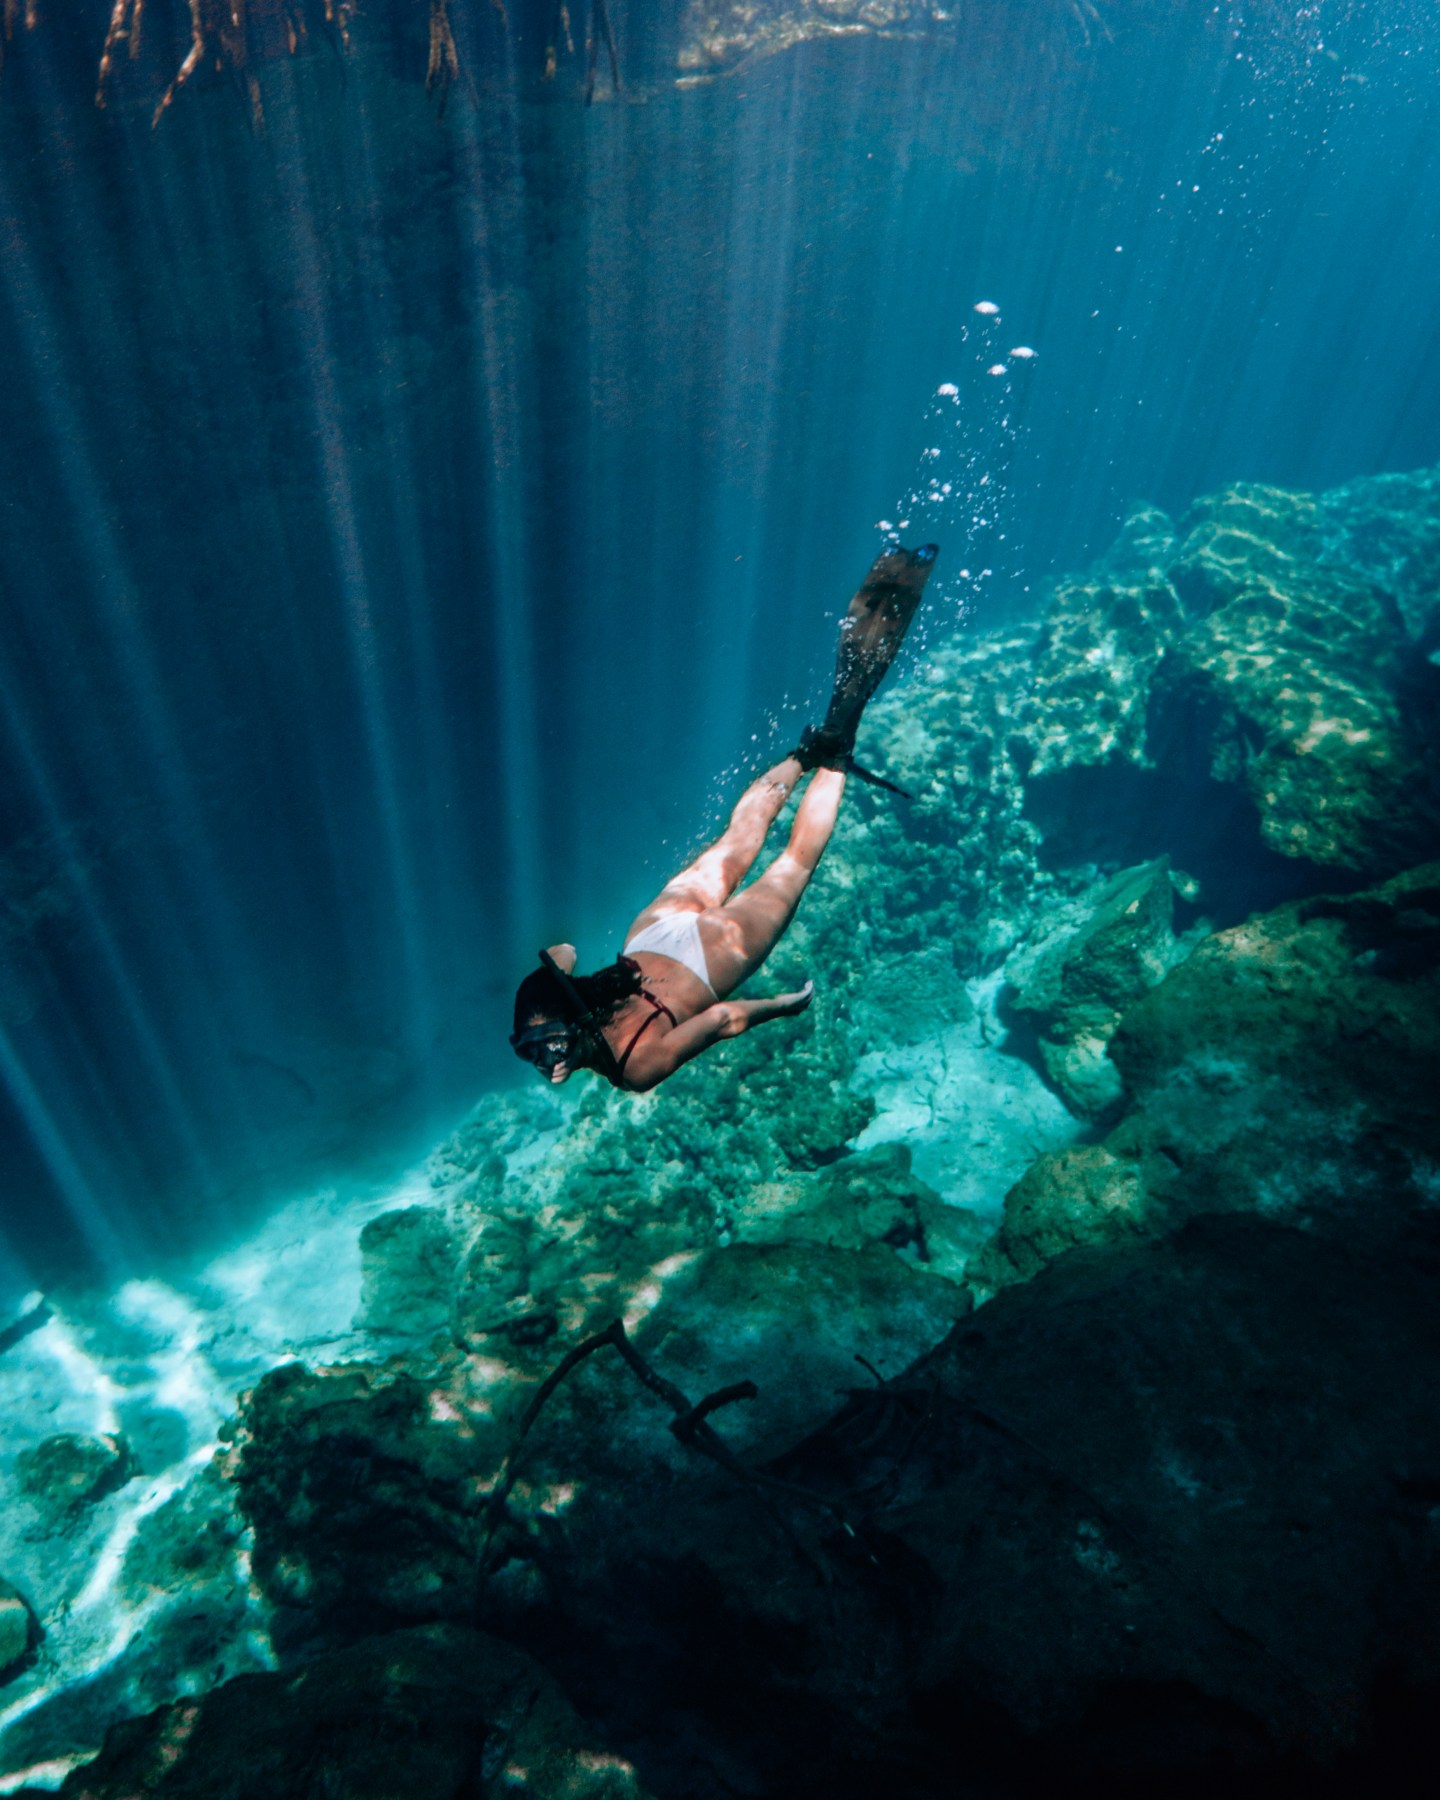 This guide gives you tips for all of the best cenotes in Tulum and the best cenotes near Tulum including what to pack for the best Tulum cenotes and more. If you are looking for day trips from Tulum, check out the best cenotes in Quintana Roo and best cenotes in Yucatan for ideas!   Tulum cenotes photography   cenotes Mexico tulum   cenotes tulum riviera maya   best cenotes in quintana roo   cenotes quintana roo   cenotes in playa del carmen